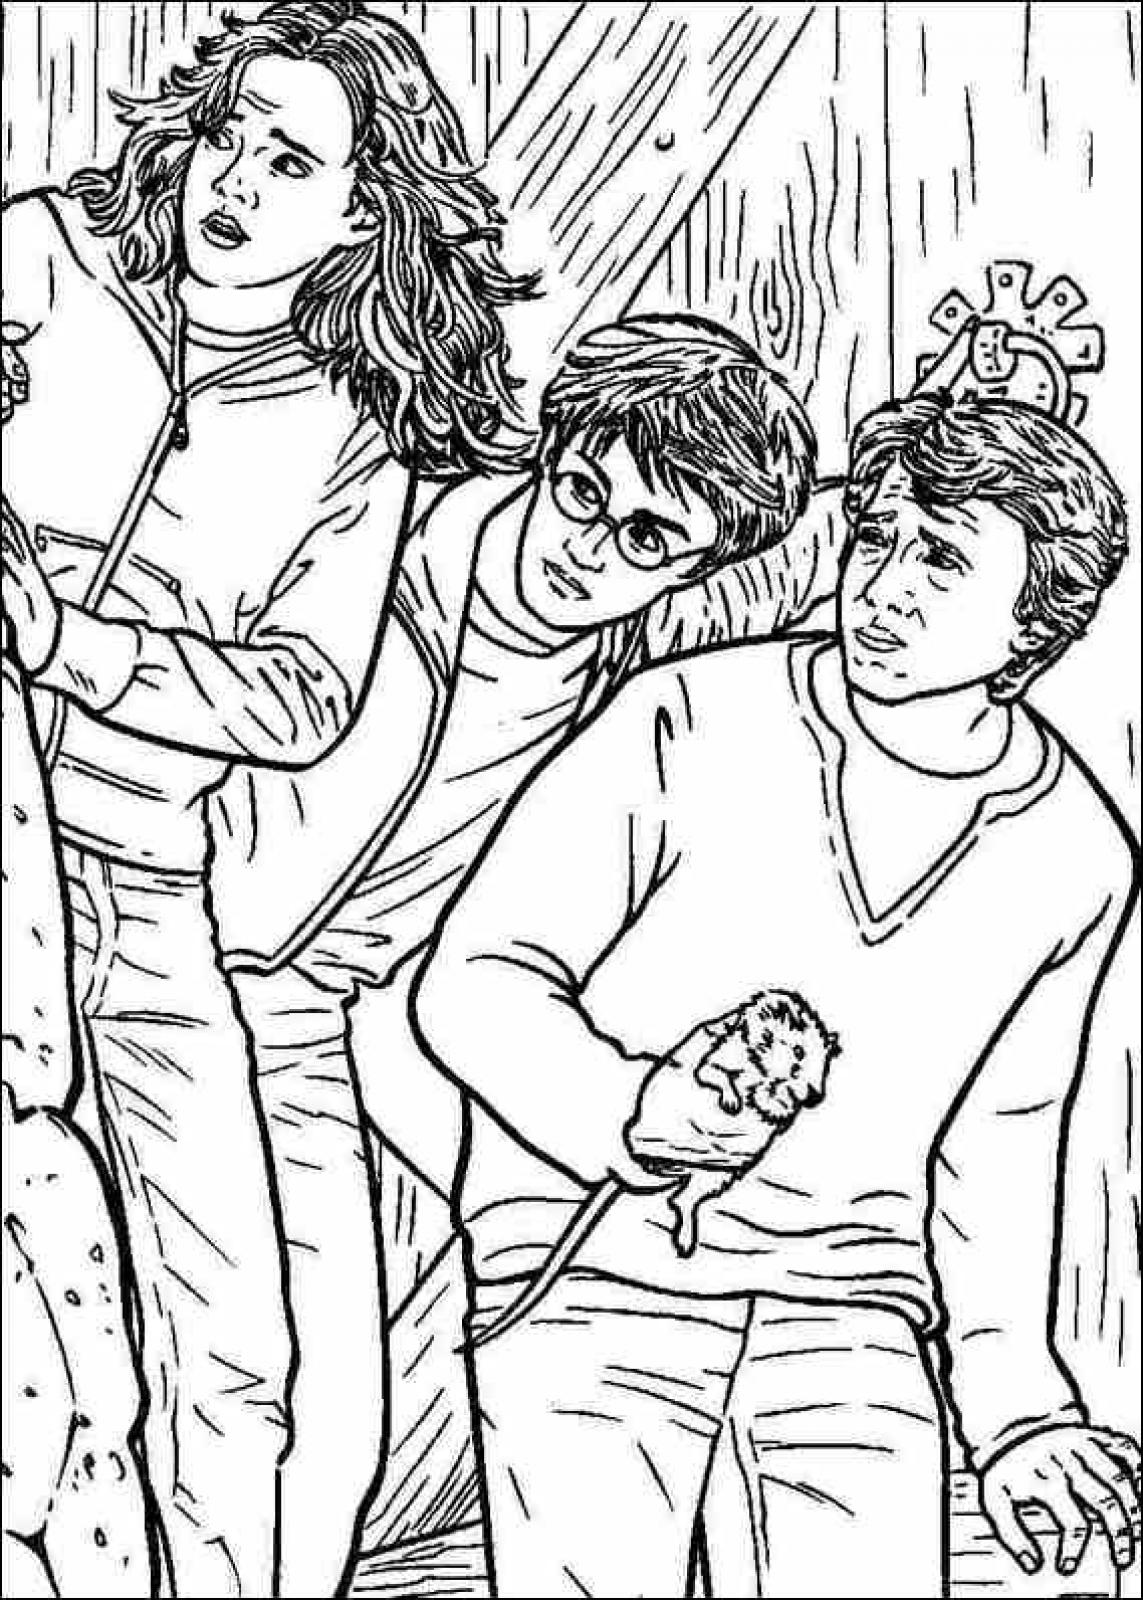 Harry potter coloring pages printable - Harry Potter Coloring Pages To Download And Print For Free